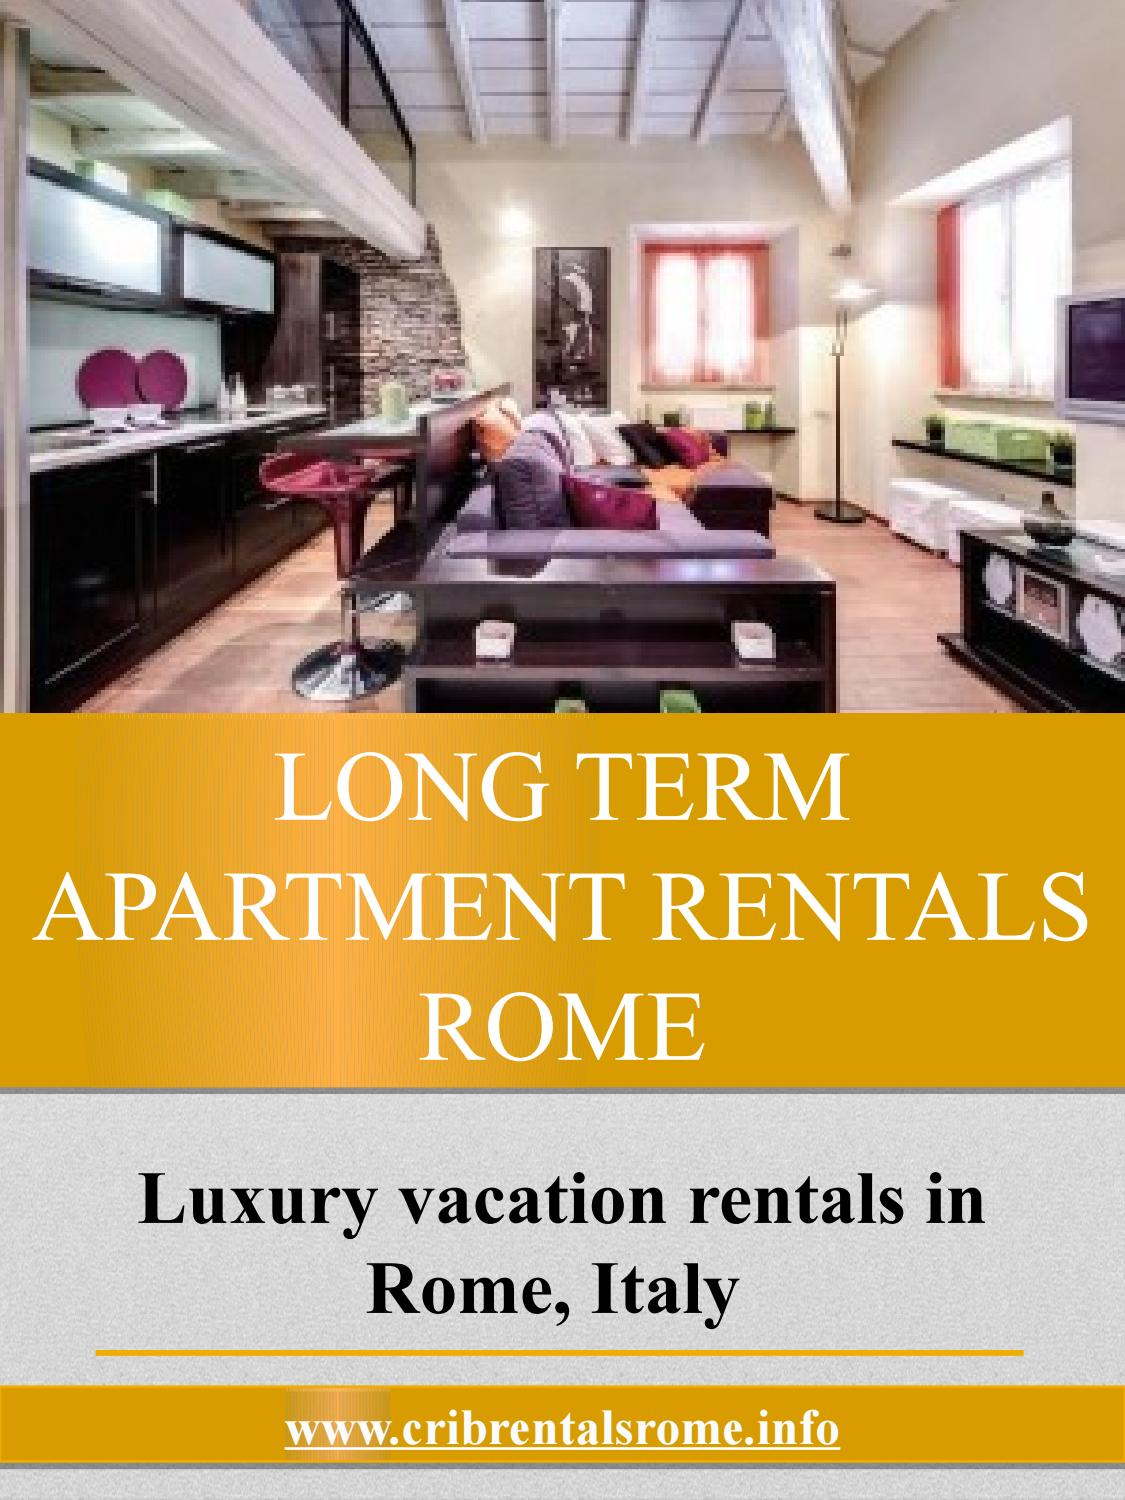 Long Term Apartment Rentals Rome by luxury apartment ...